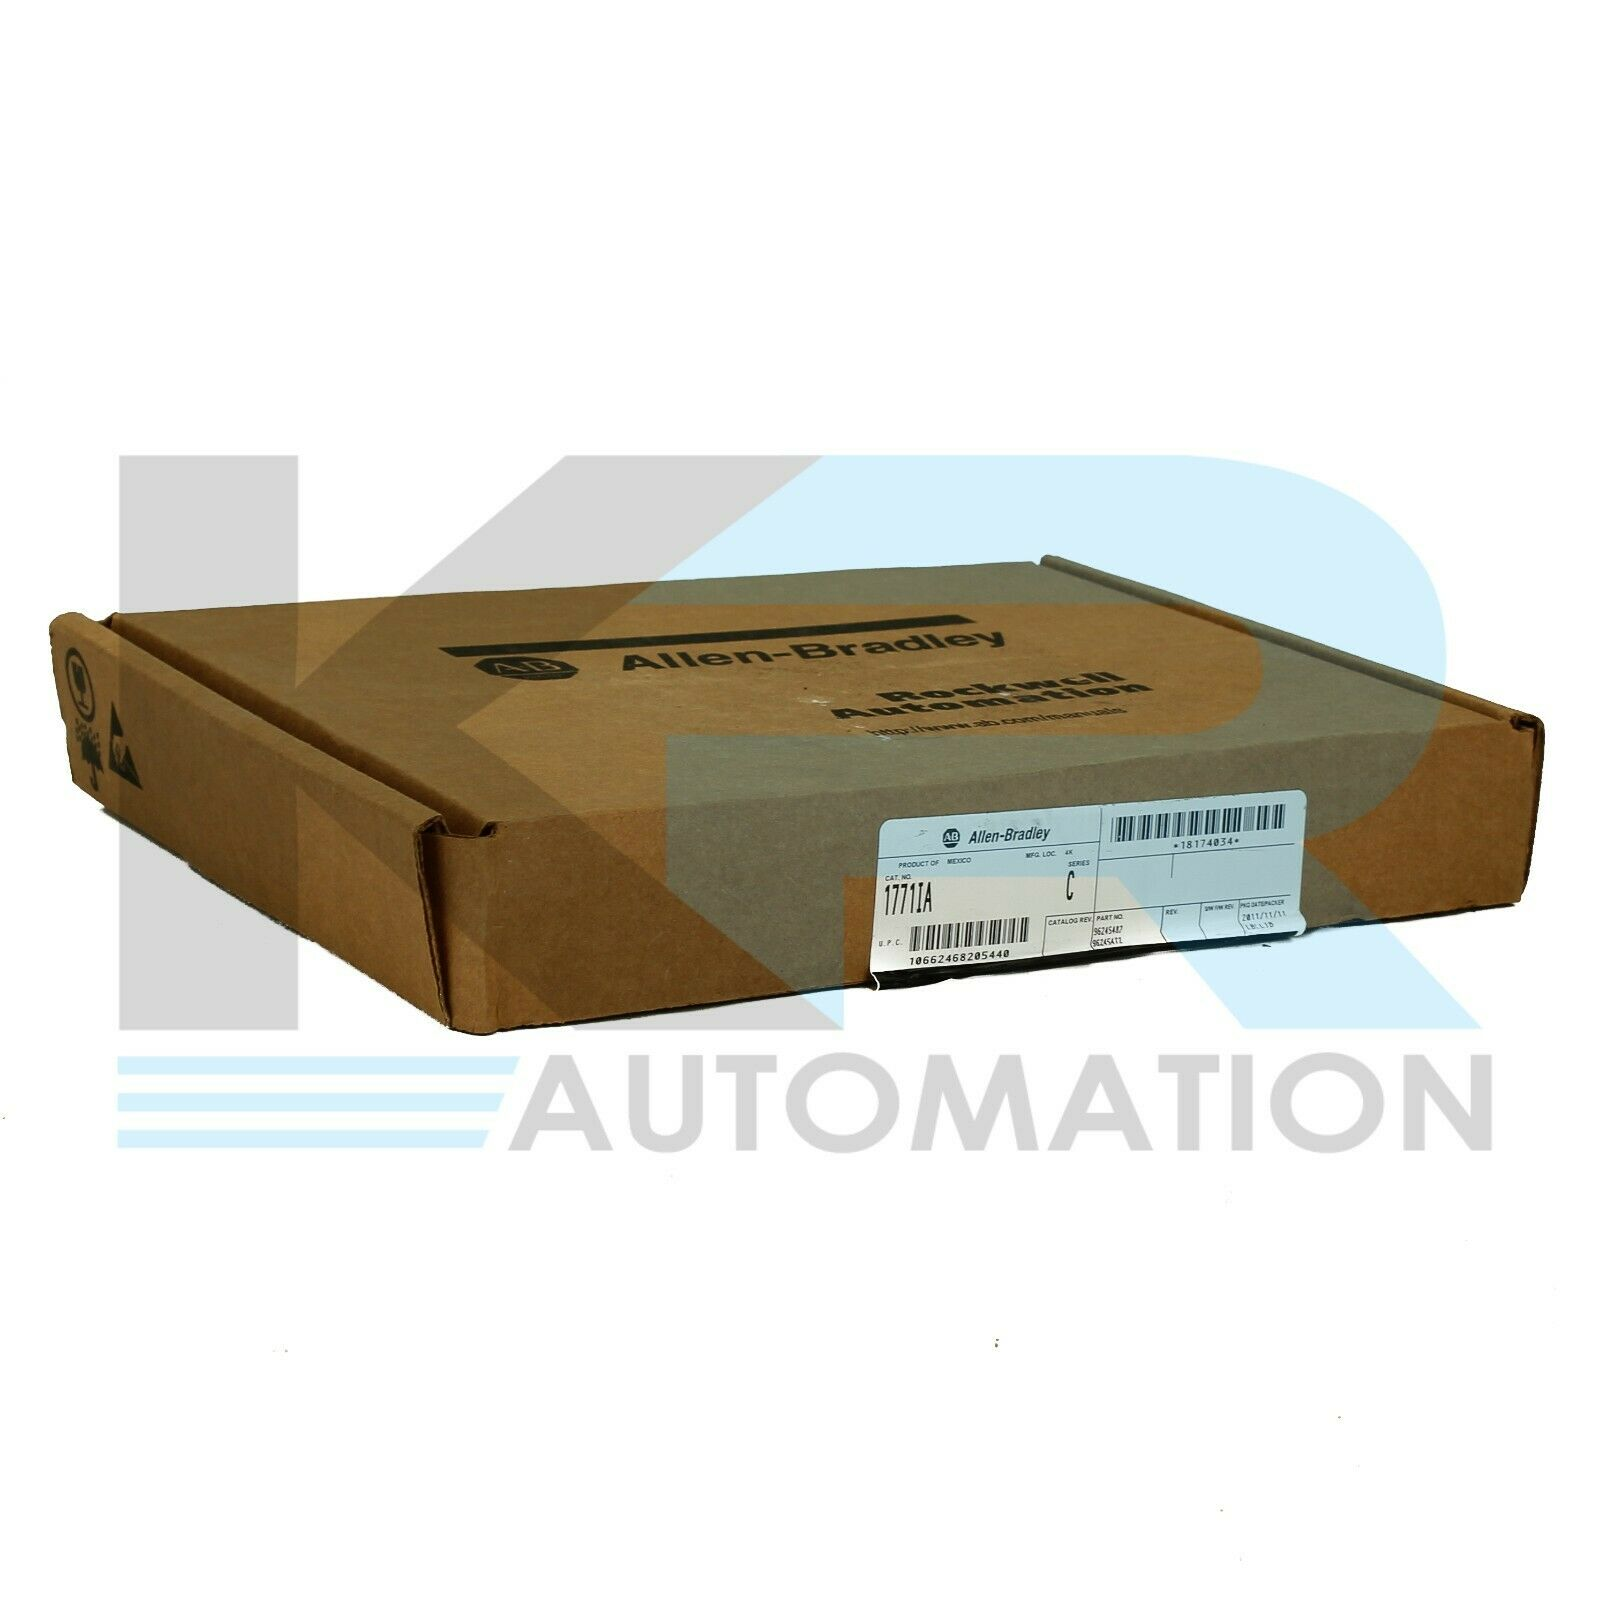 New Factor Sealed Allen Bradley 1771-IA /C PLC-5 Input Module